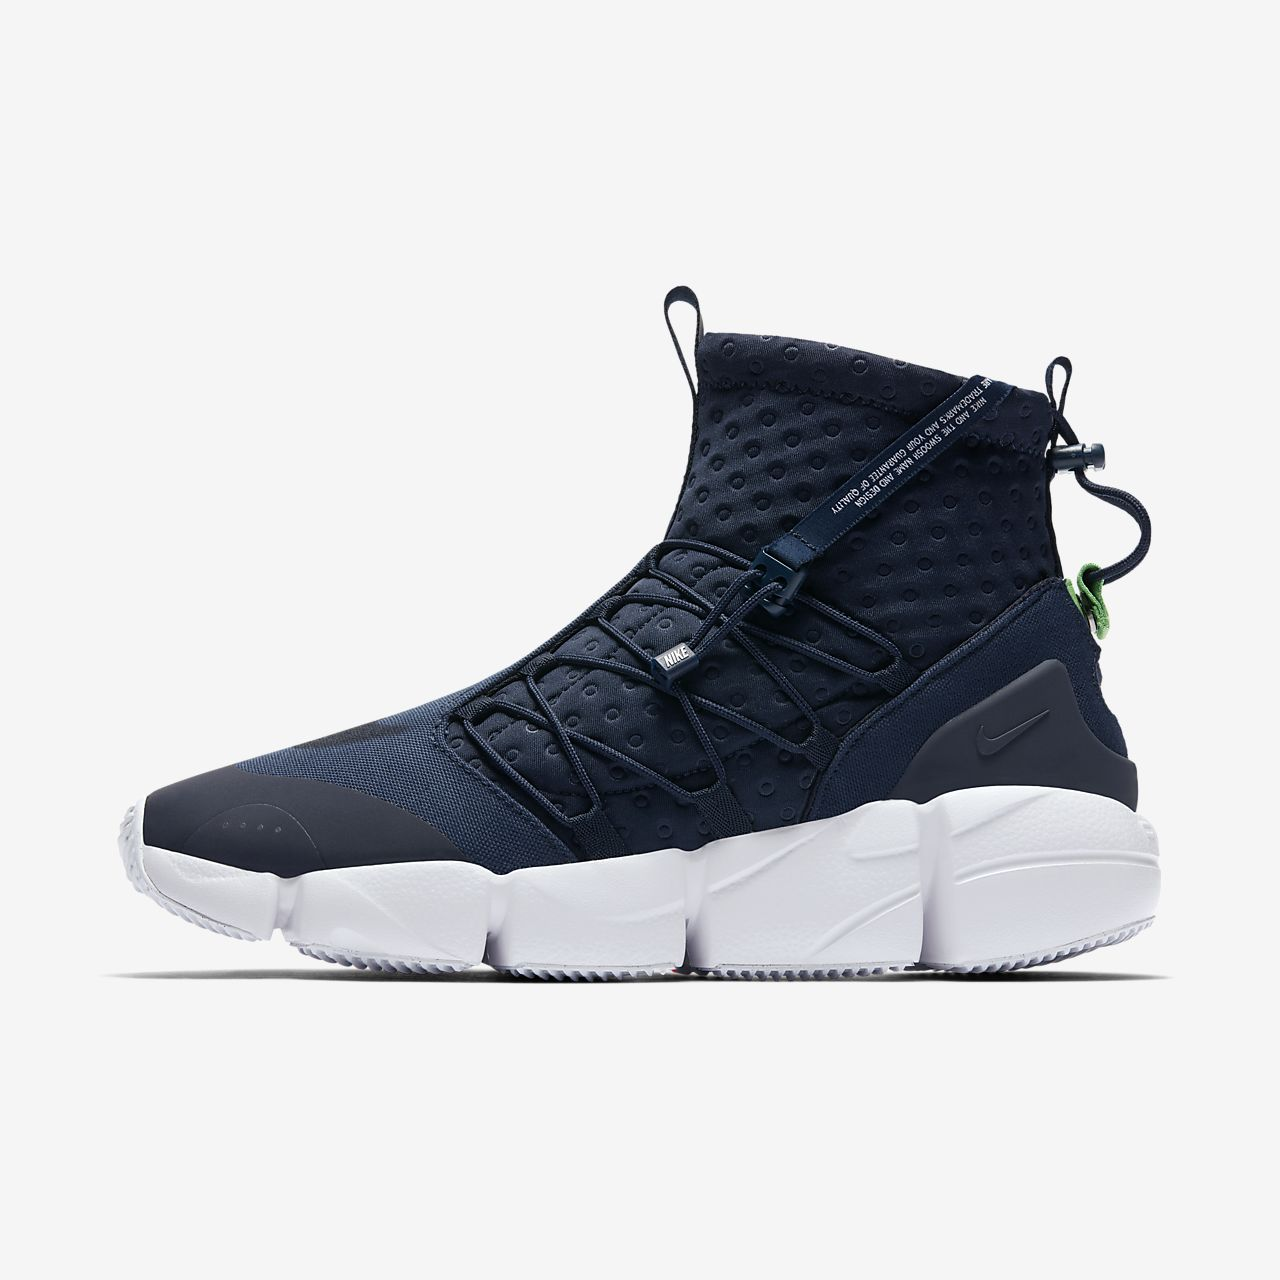 pretty nice 0cece 383fd Nike Air Footscape Mid Utility Herenschoen